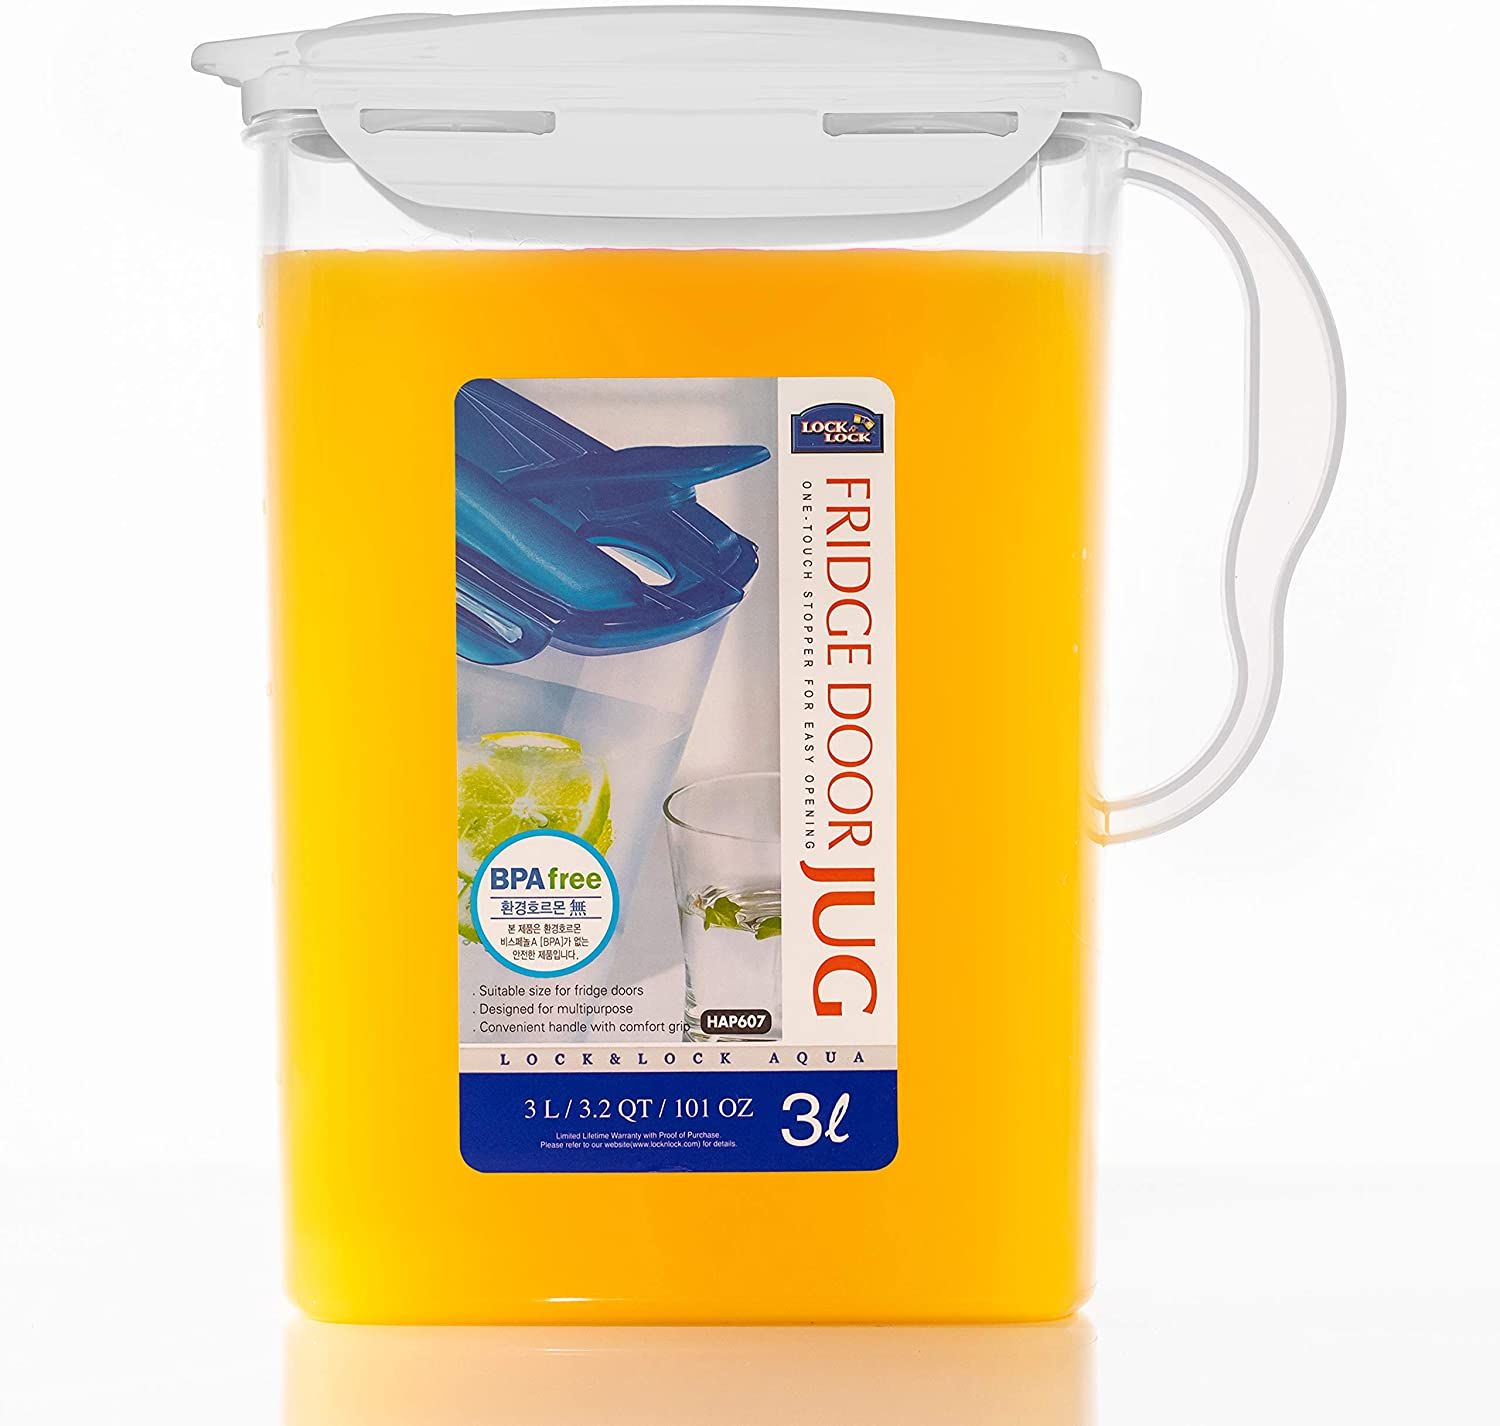 LOCK & LOCK Aqua Fridge Door Water Jug with Handle BPA Free Plastic Pitcher with Flip Top Lid Perfect for Making Teas and Juices, 3 Quarts, White